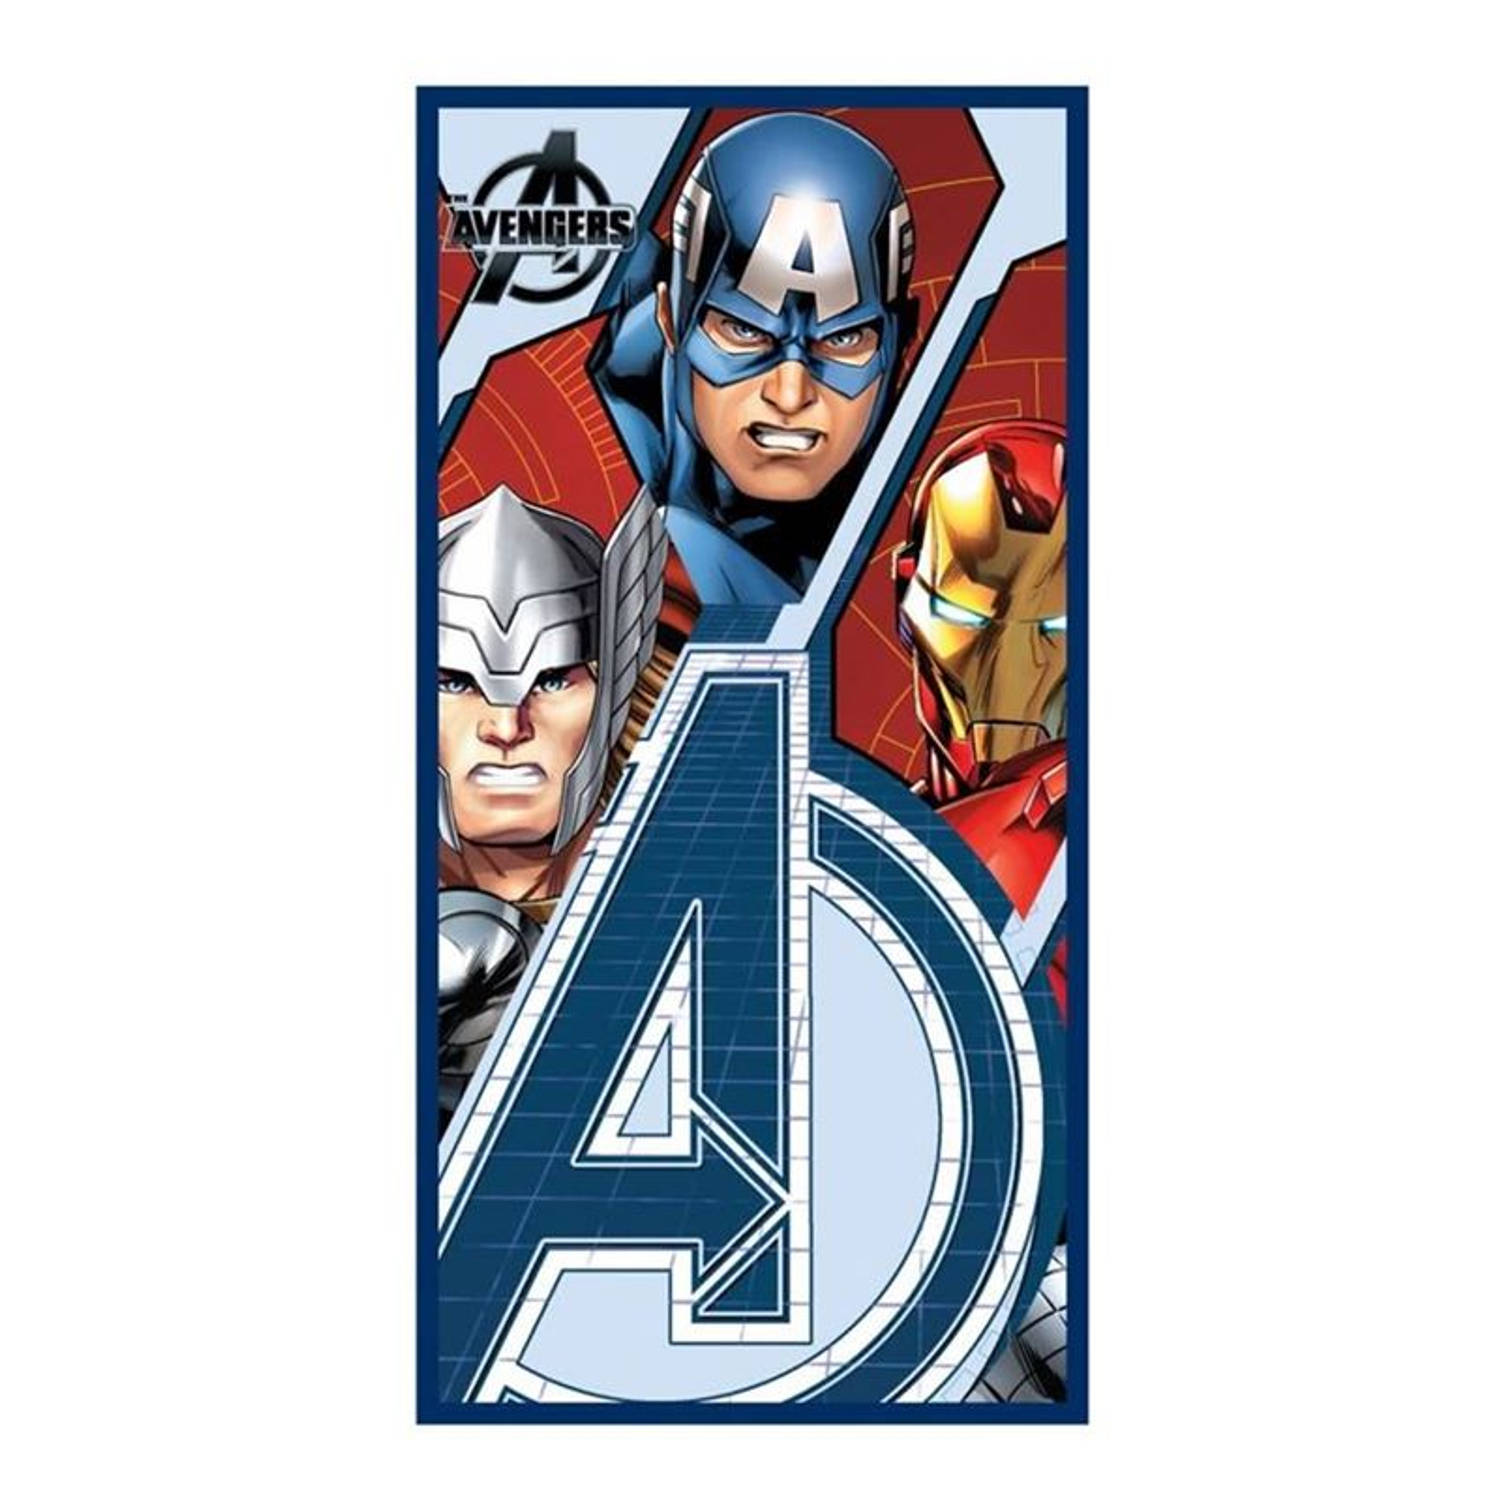 Badlaken Avengers Force: 70x140 Cm